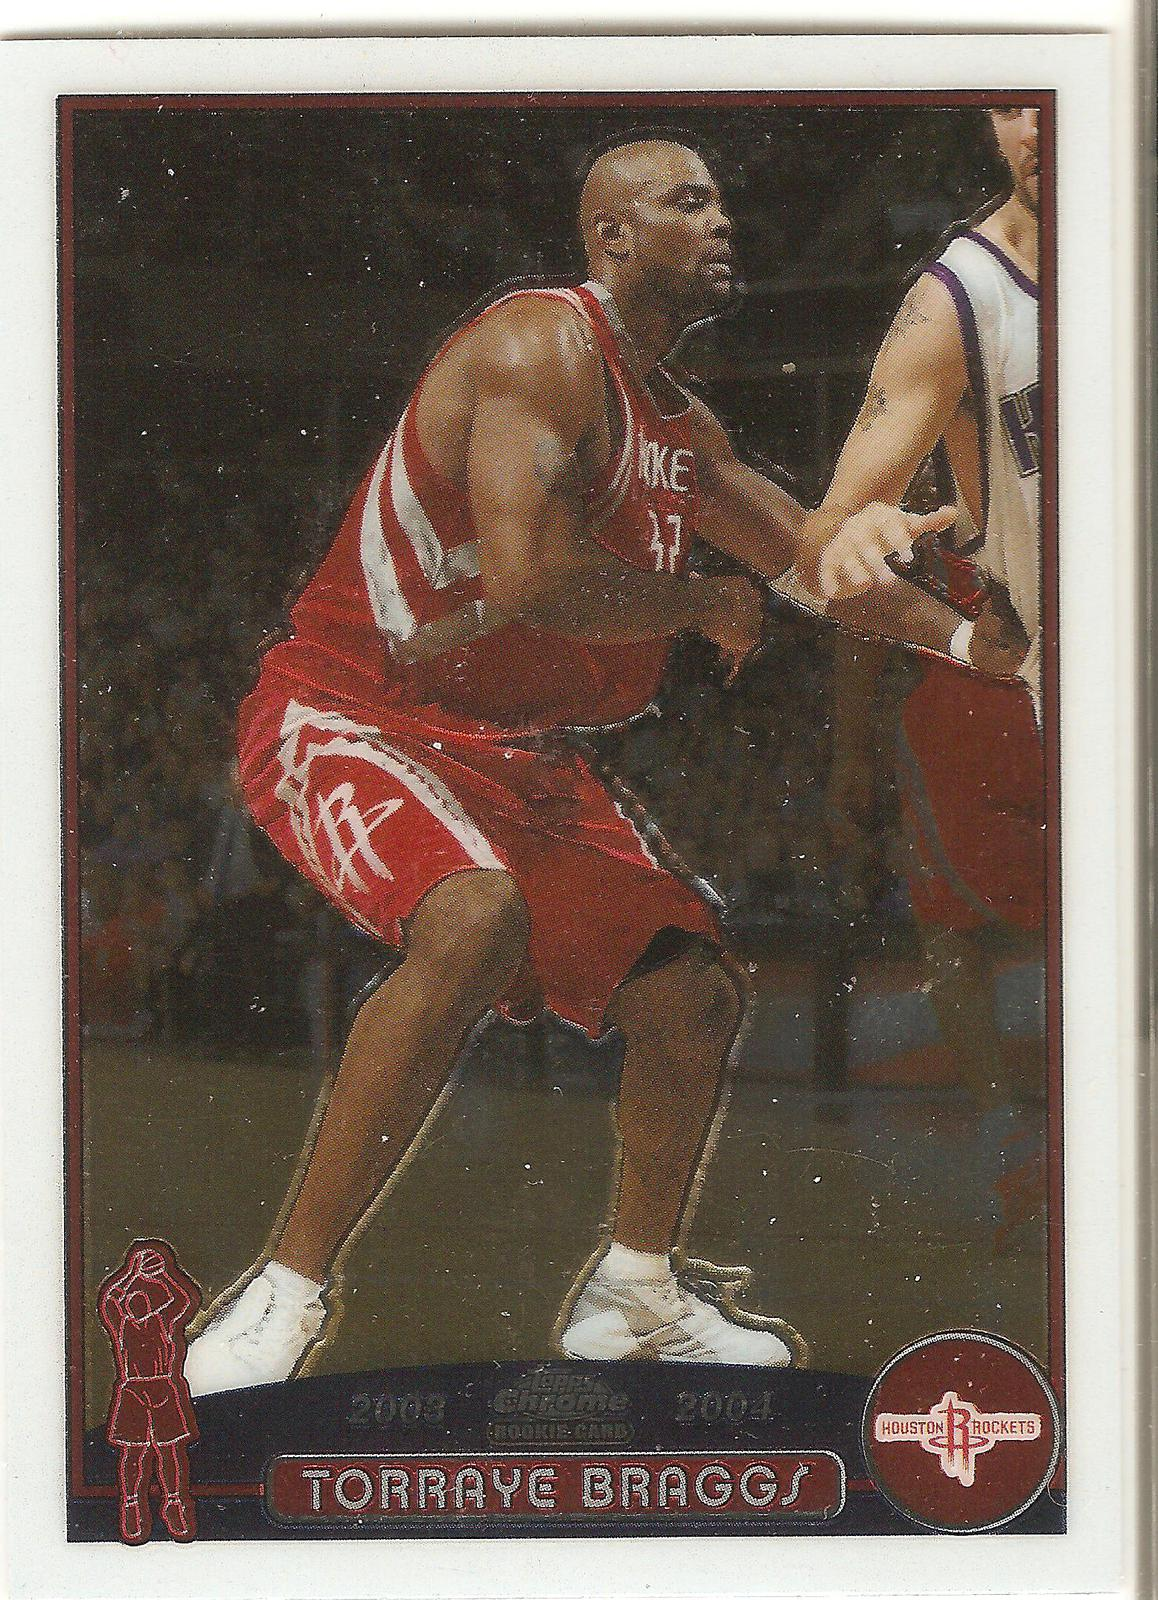 Torraye Braggs Topps Chrome 03-04 #157 Houston Rockets Harlem Globetrotters